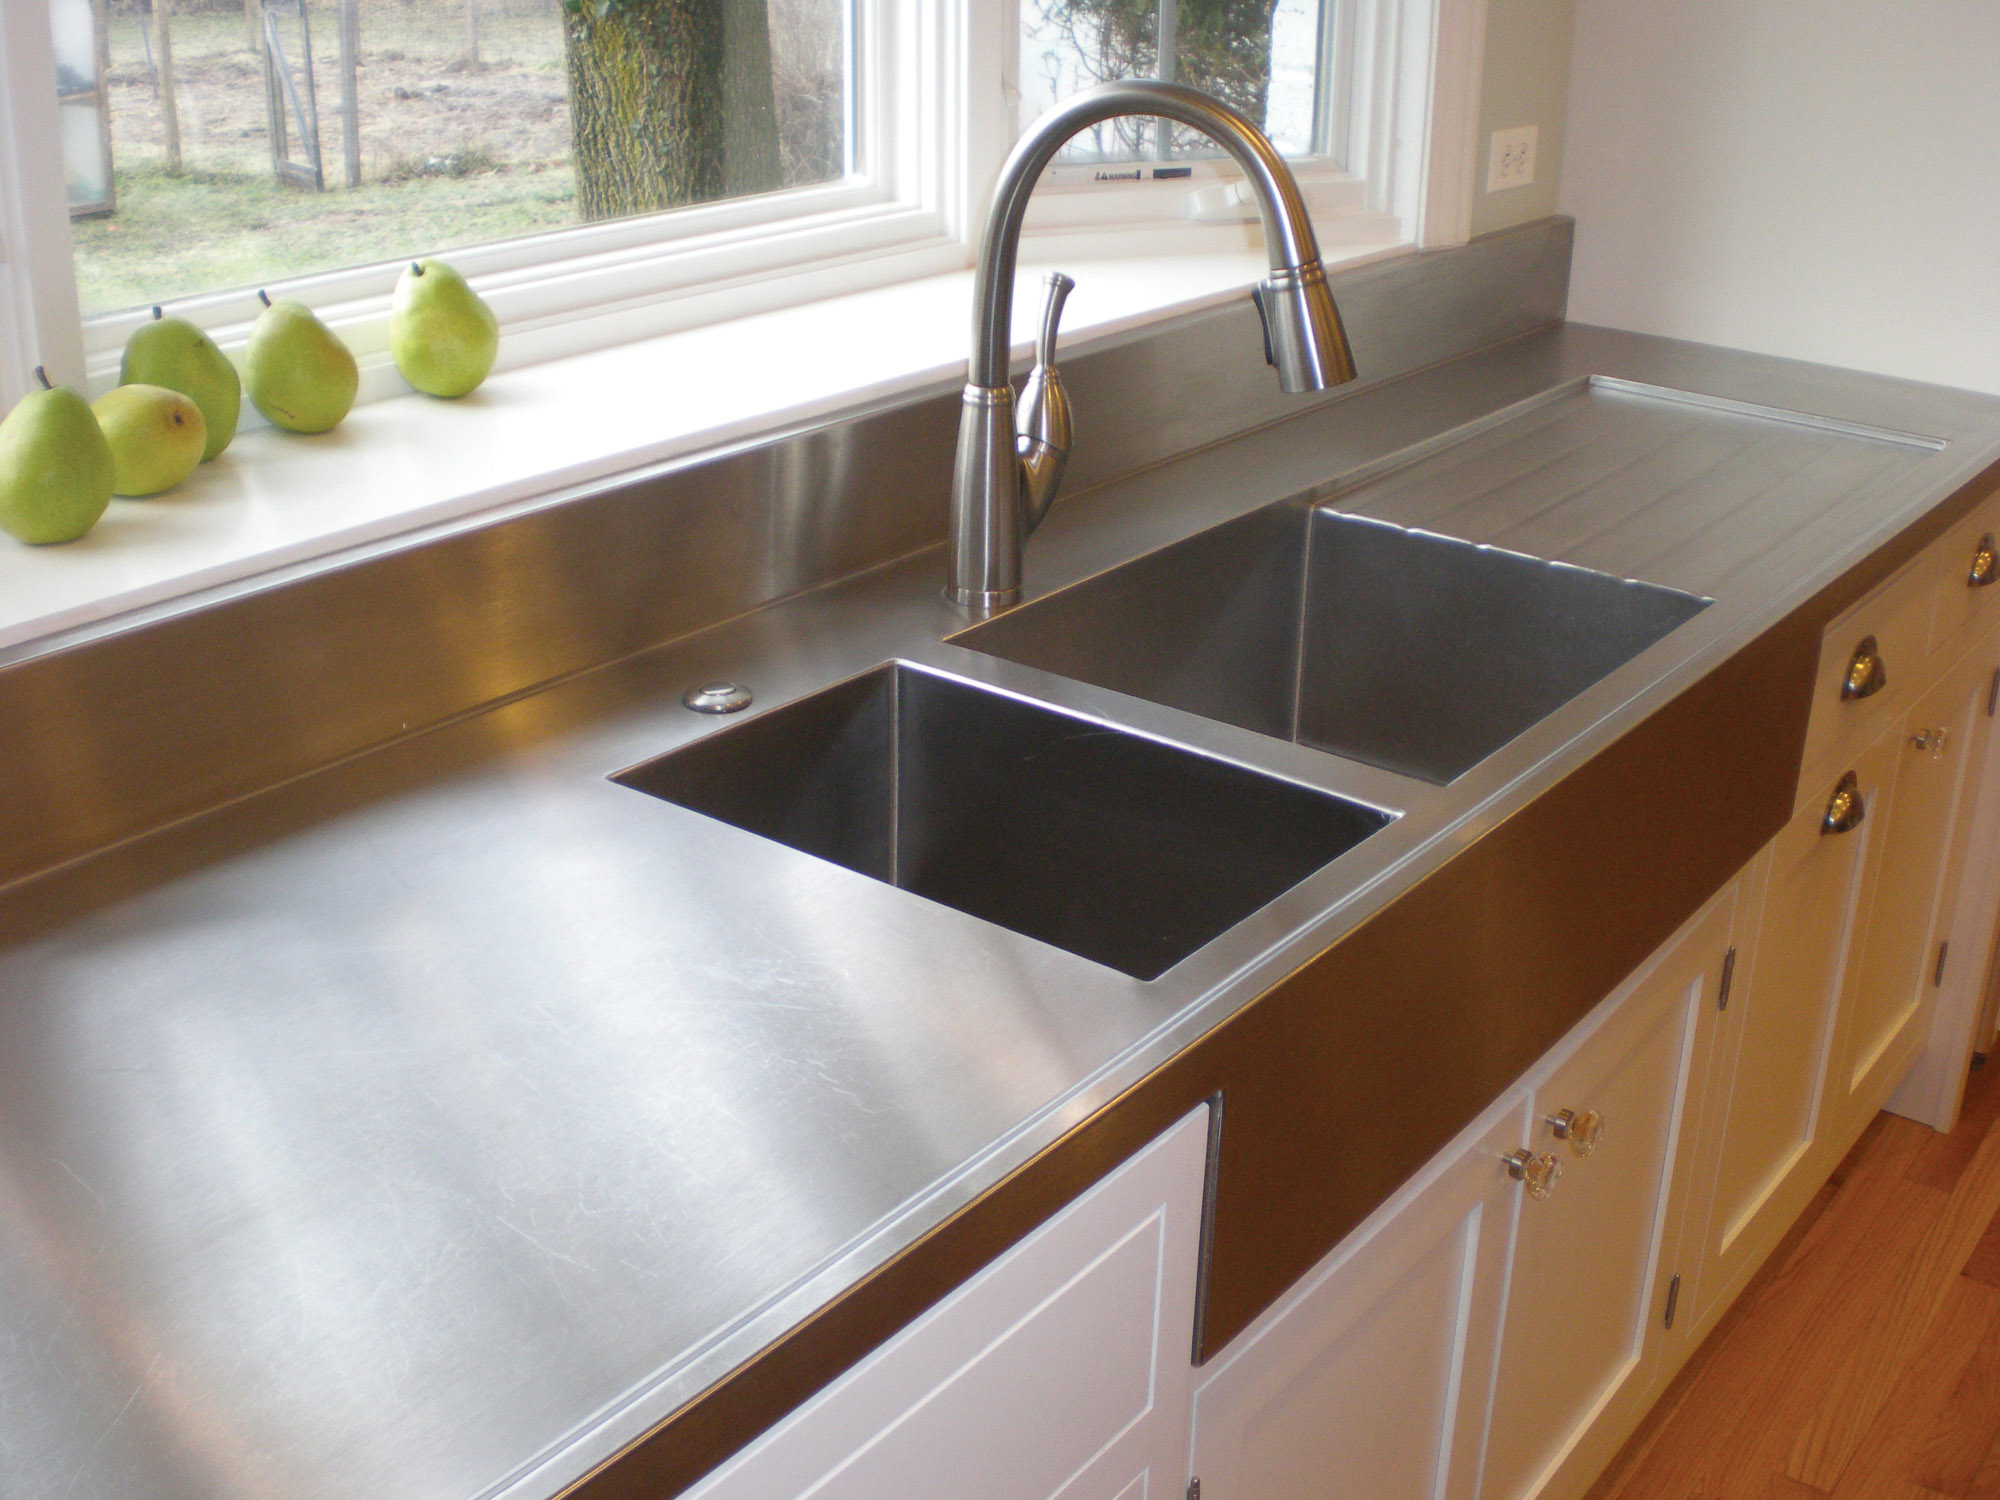 drainboard sink made by  Specialty Stainless